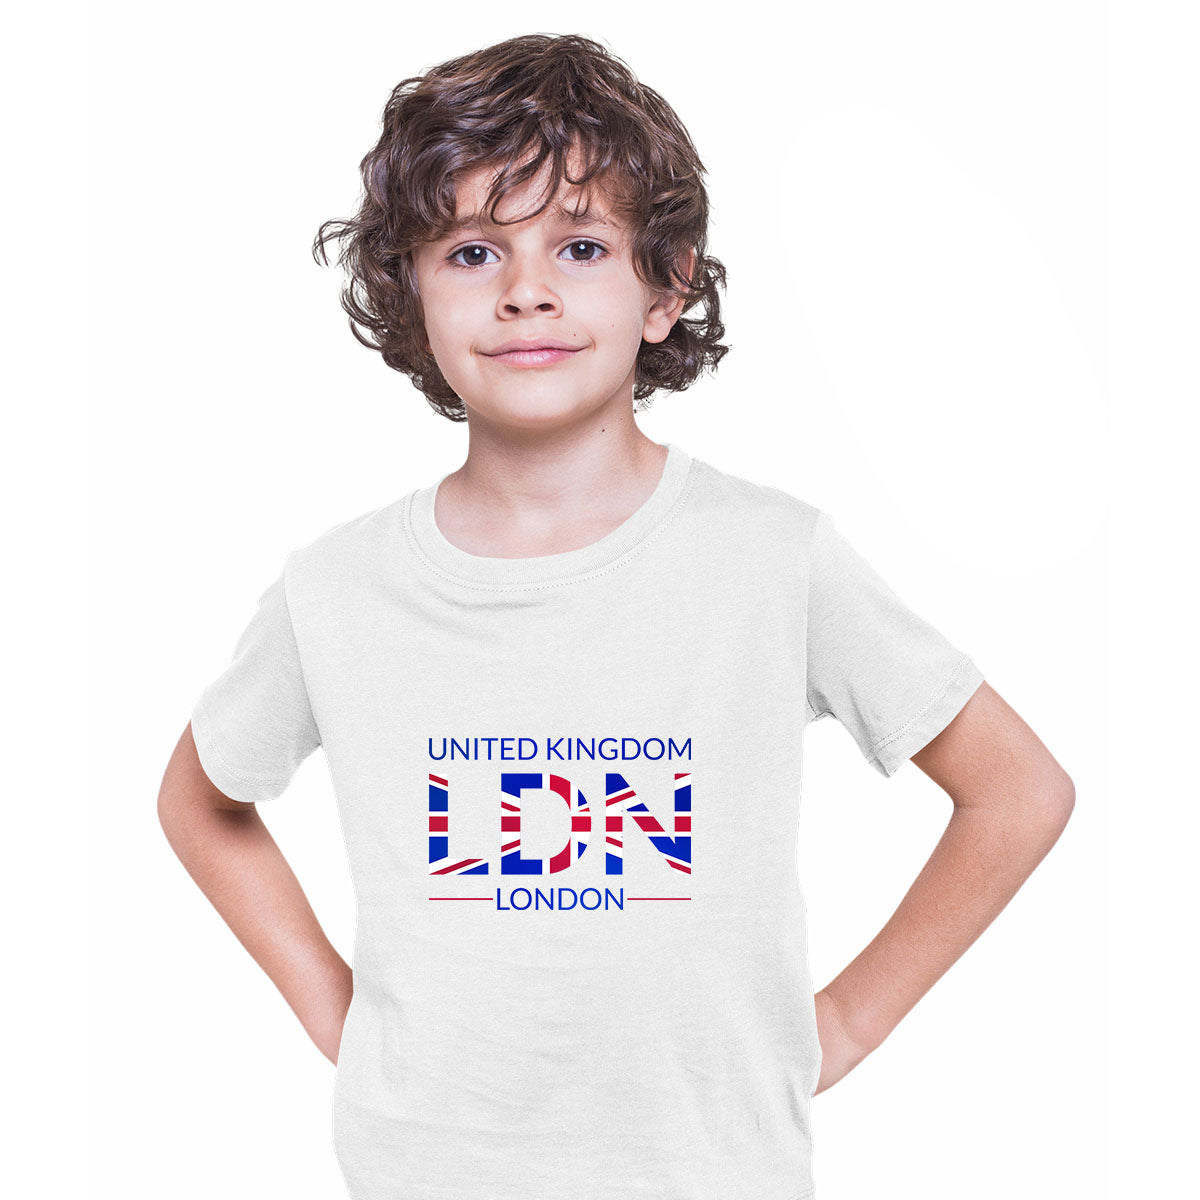 LDN Union Jack Abstract Print Kids White T-Shirt London Flag